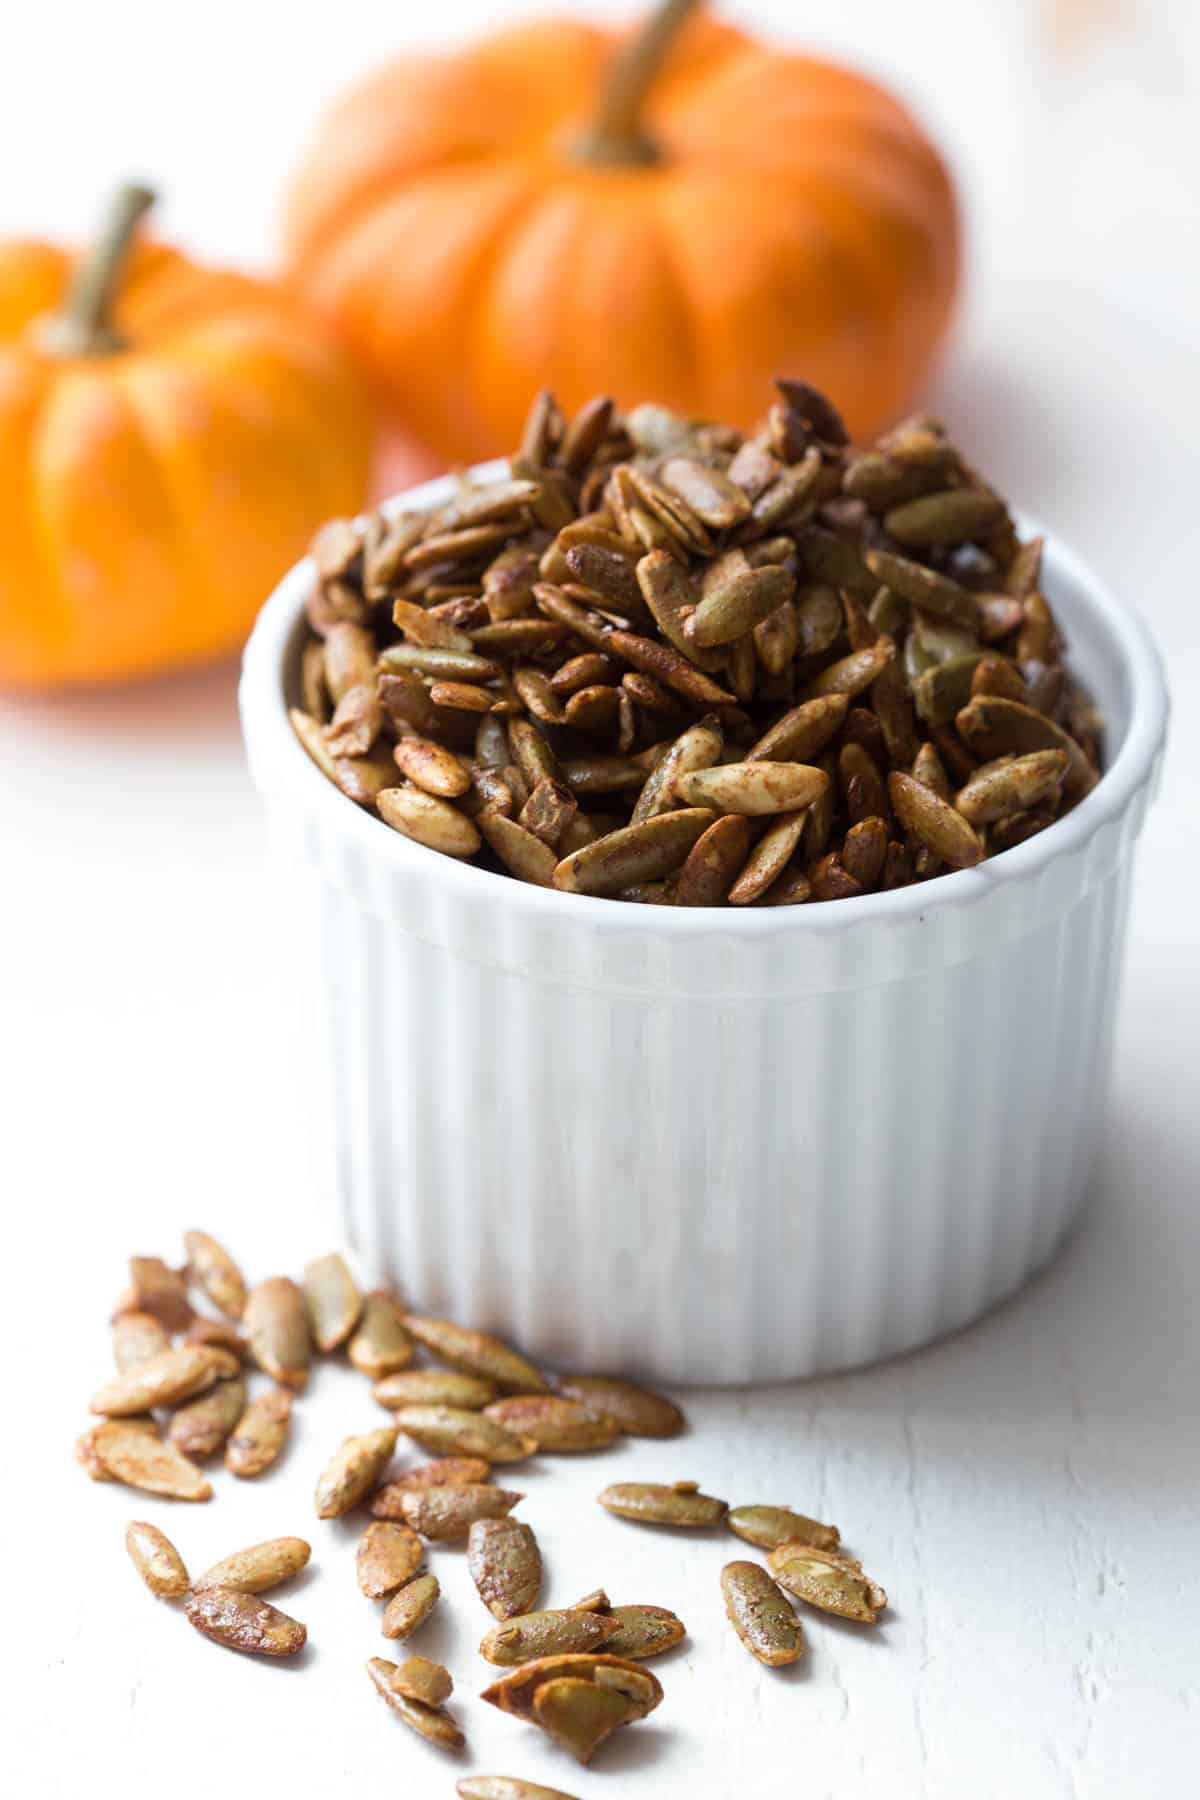 a bowl filled with oven roasted pumpkin seeds with a few scattered on a the counter next to the bowl